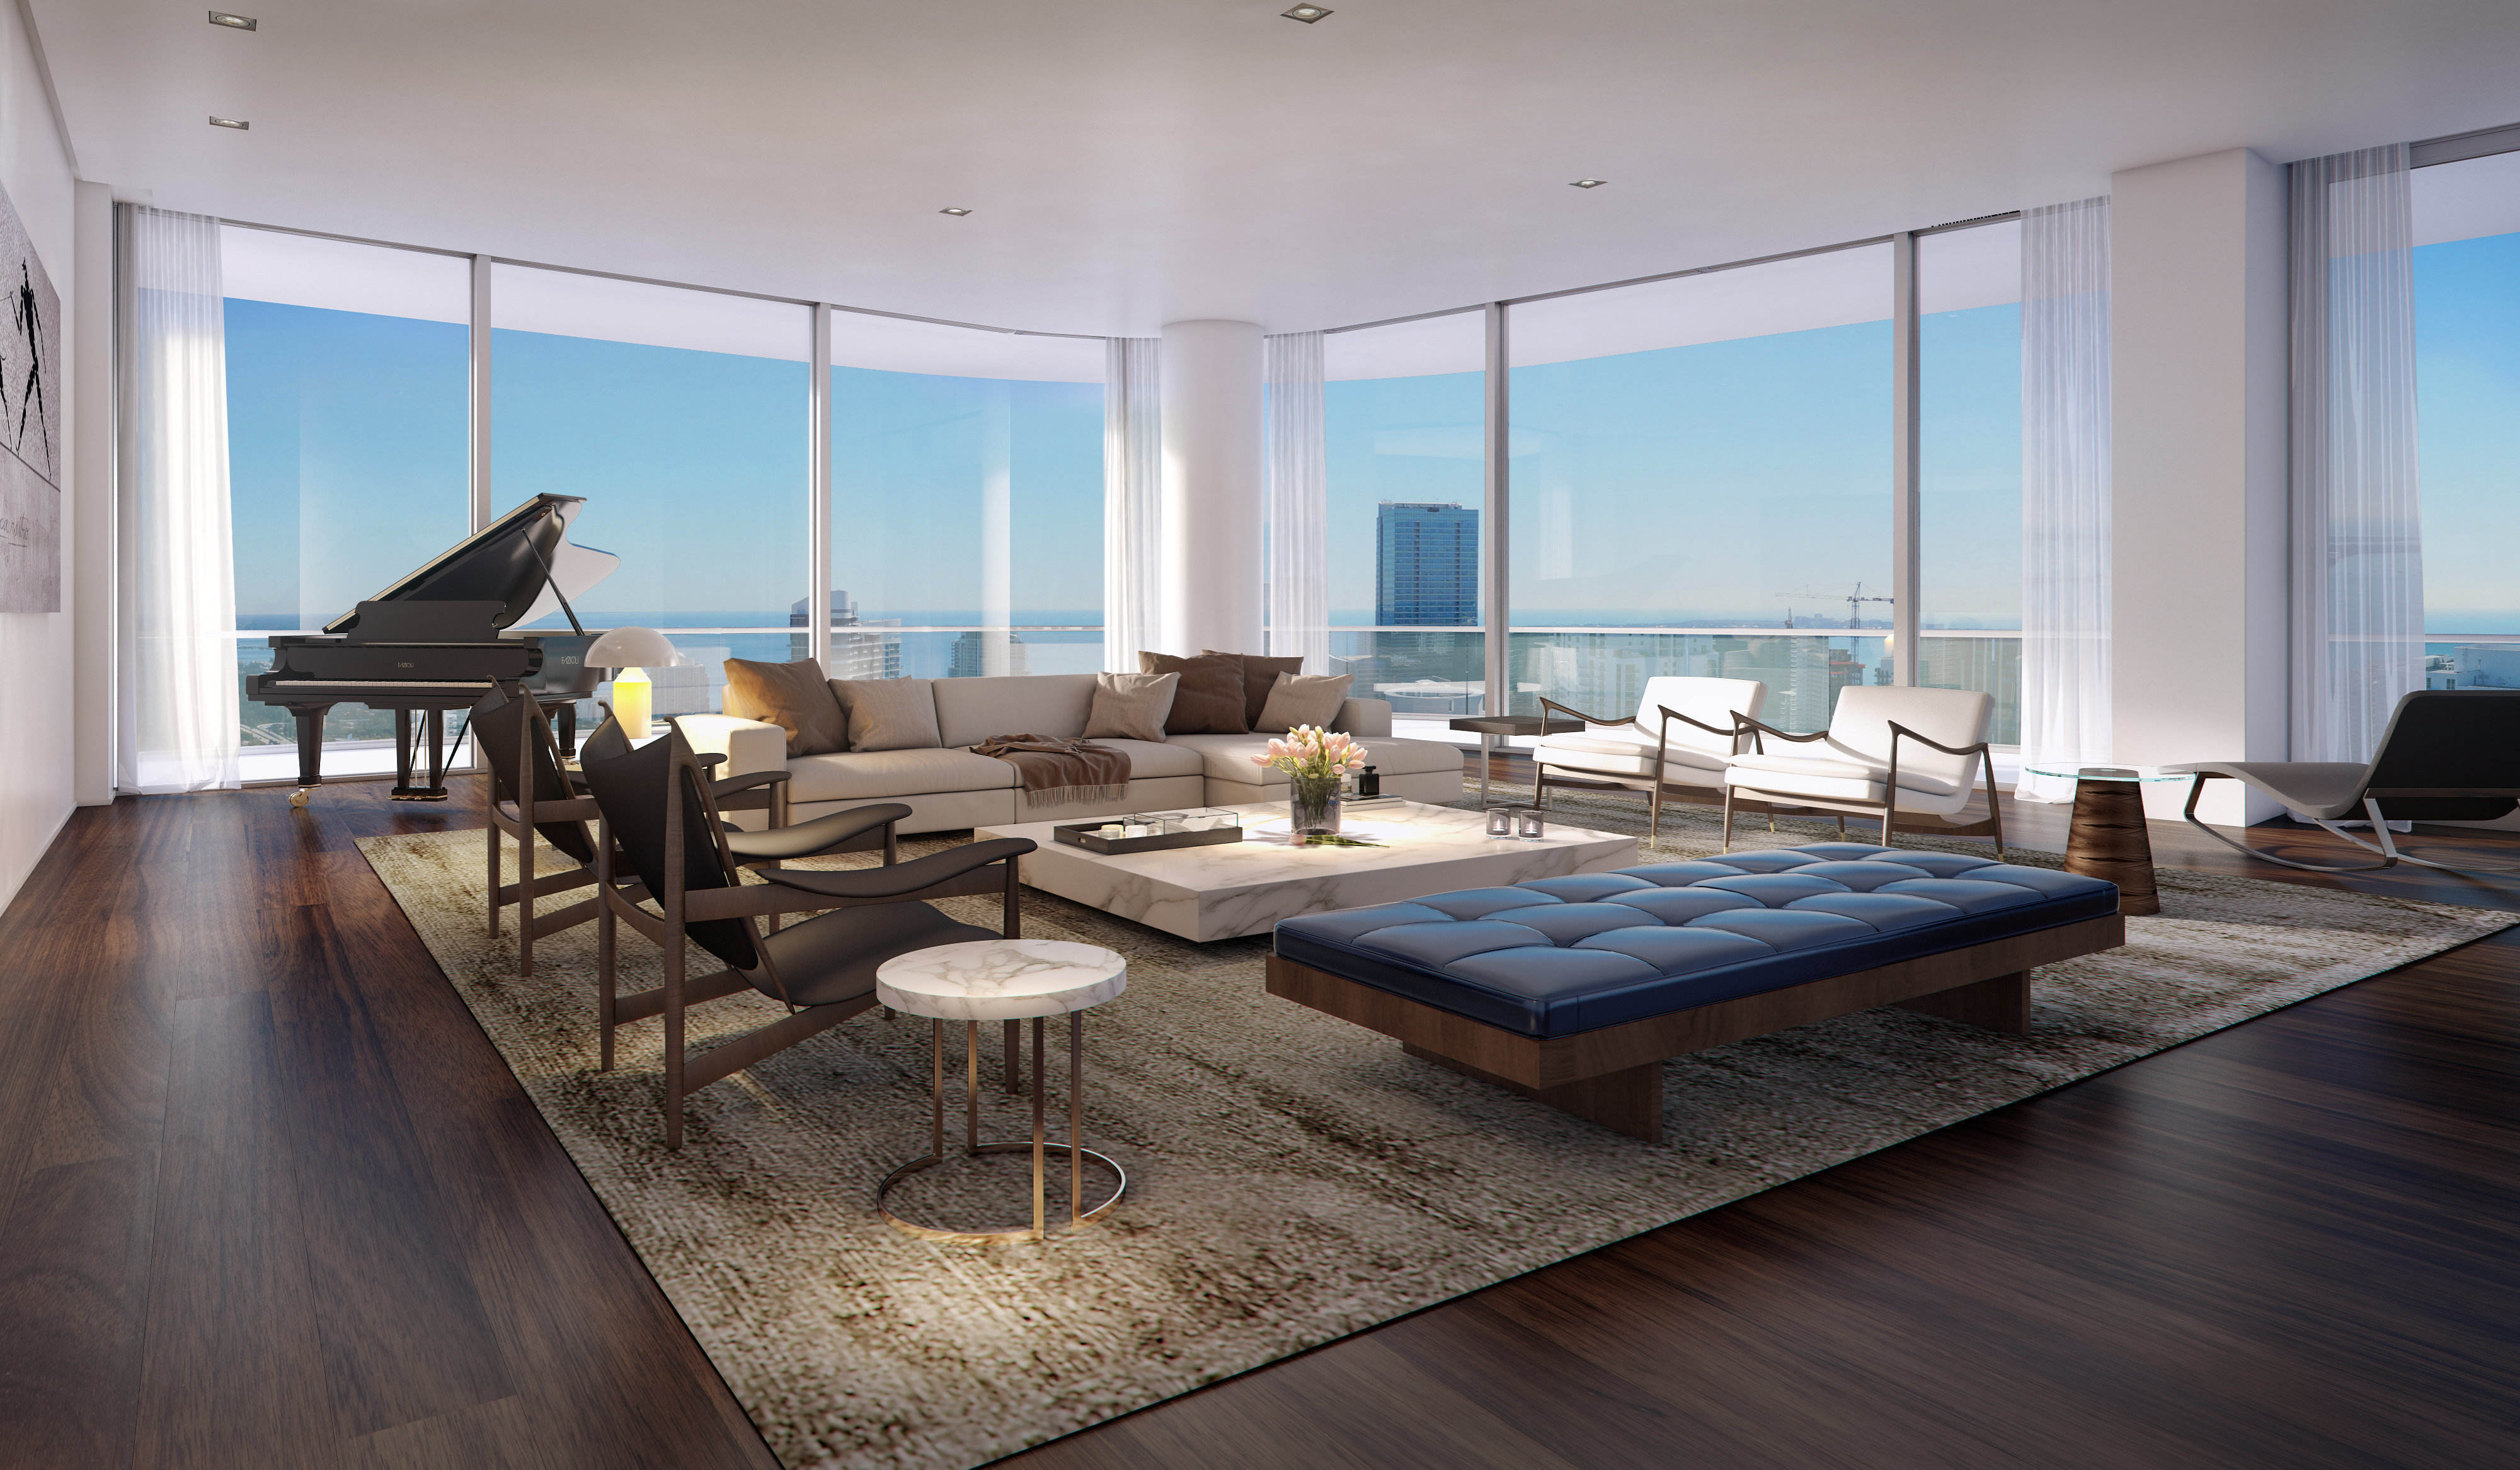 SLS LUX Brickell sets Closings on its new Luxury Miami Property